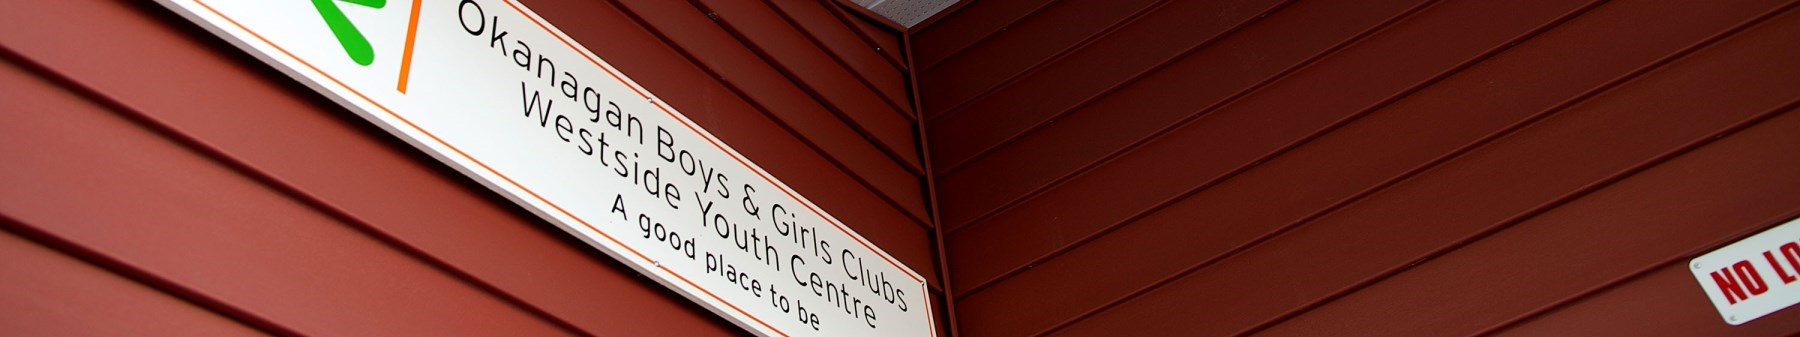 Youth Centre Sign D-Hull Image